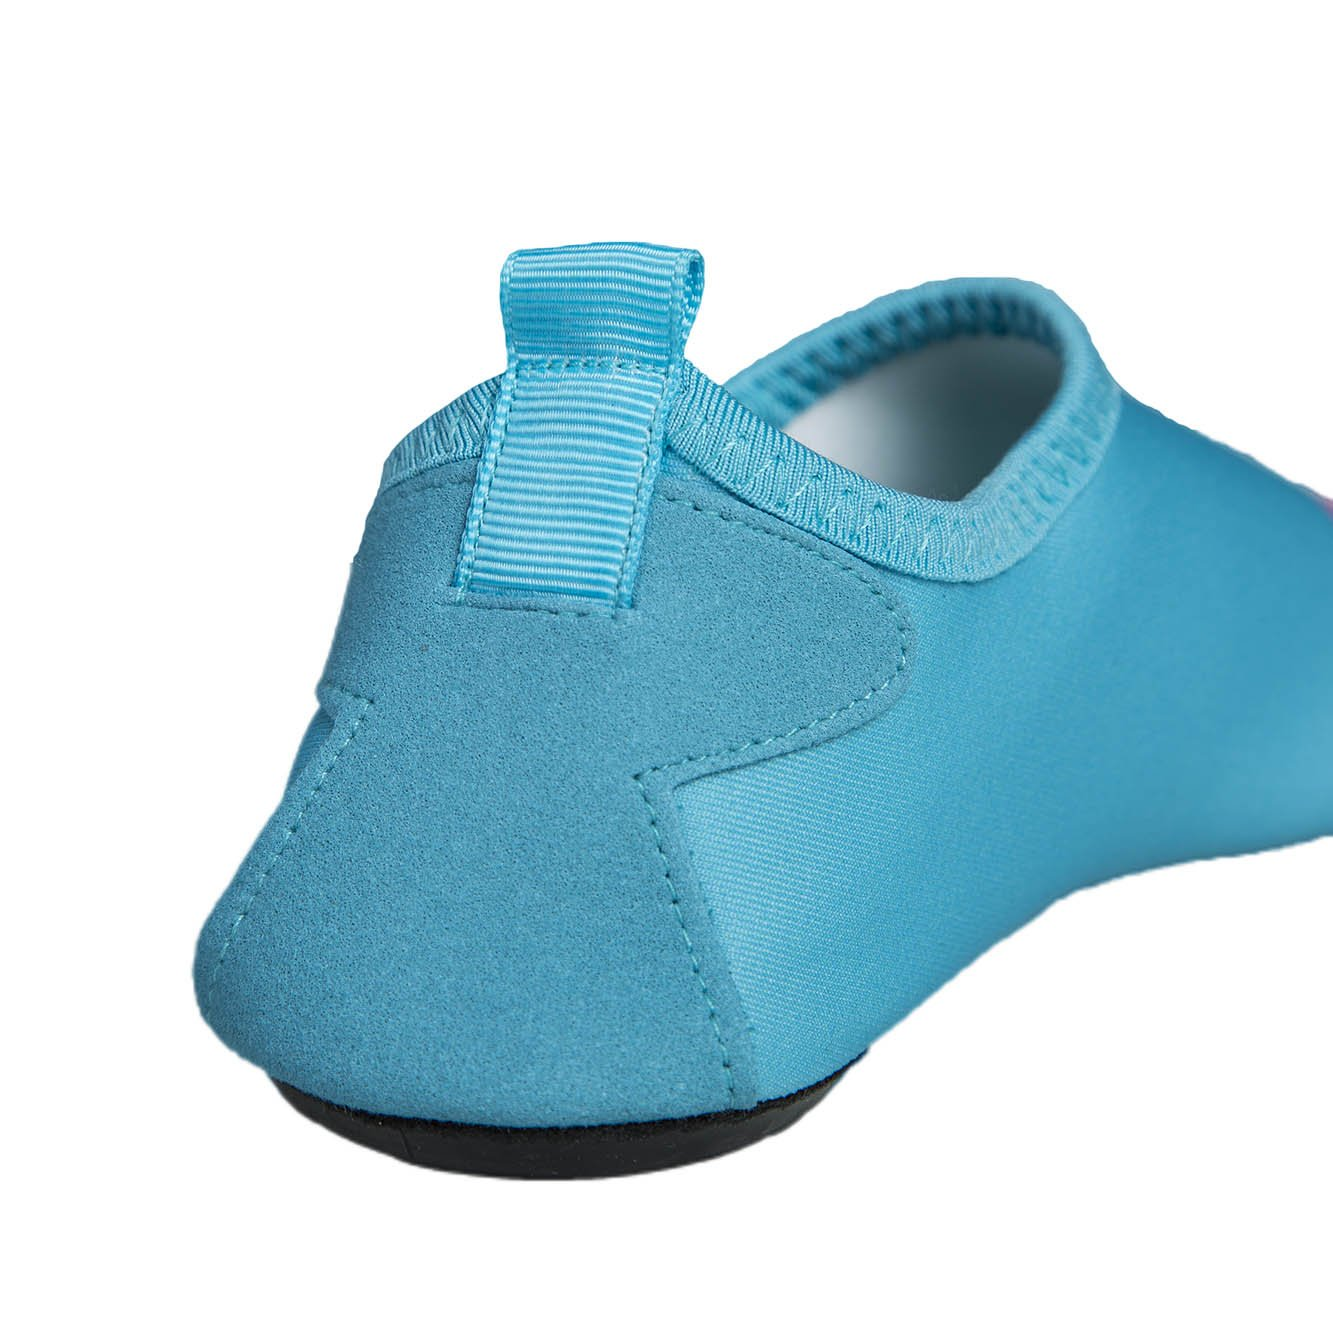 IH-TECH Kids Water Shoes Toddler Swim Shoes Quick Dry Non-Slip Barefoot Aqua Socks for Beach Pool